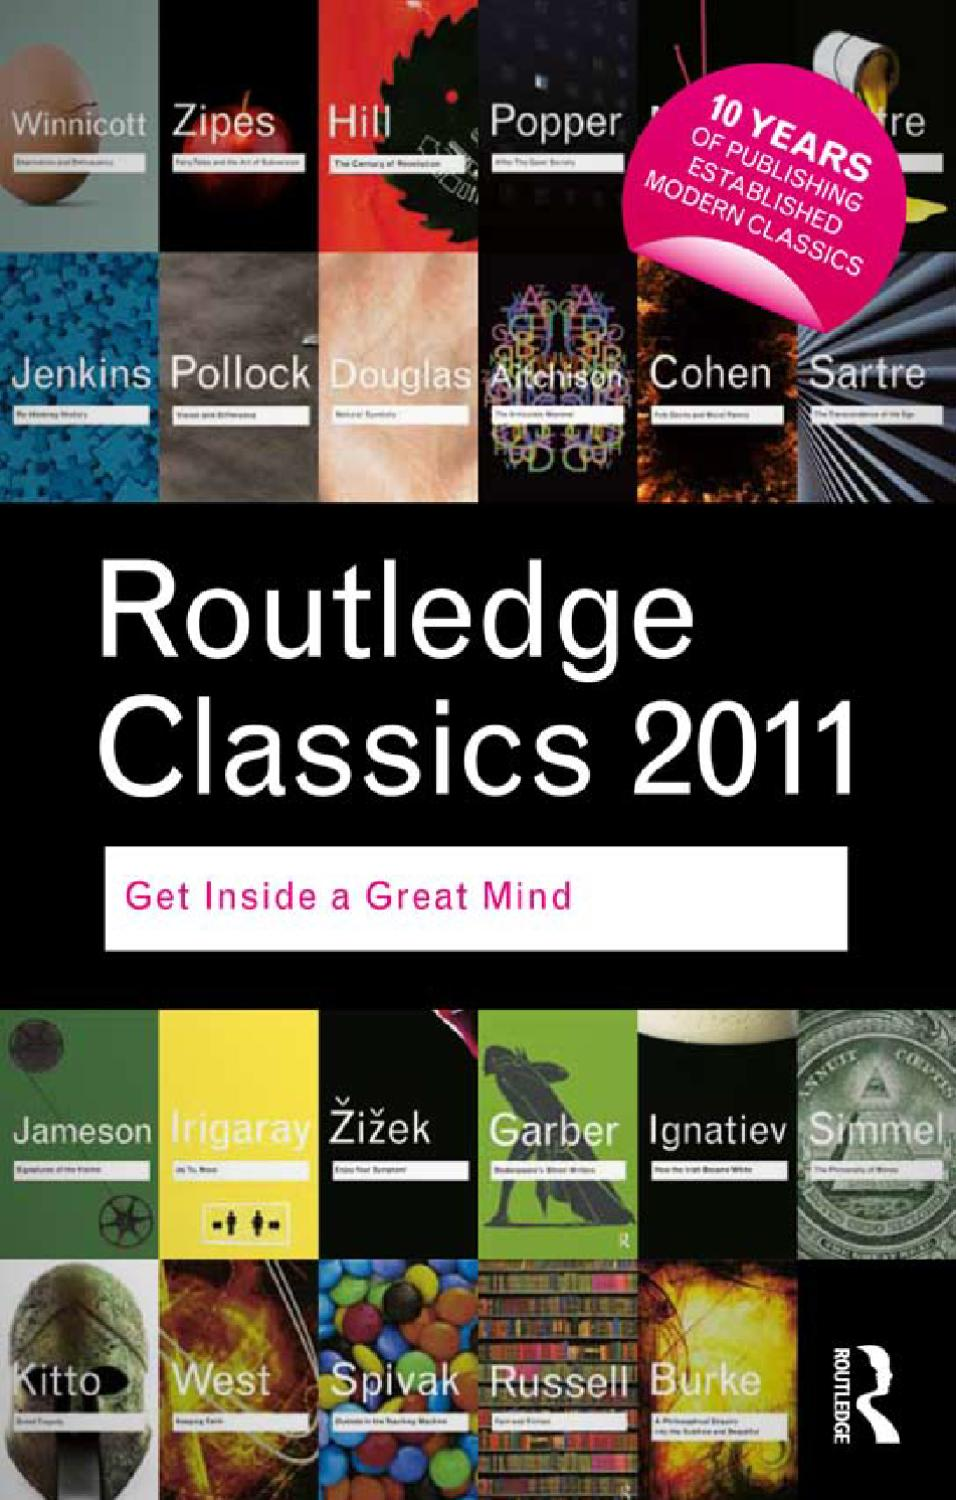 Routledge Classics catalogue 2011 by Routledge Taylor & Francis Group -  issuu